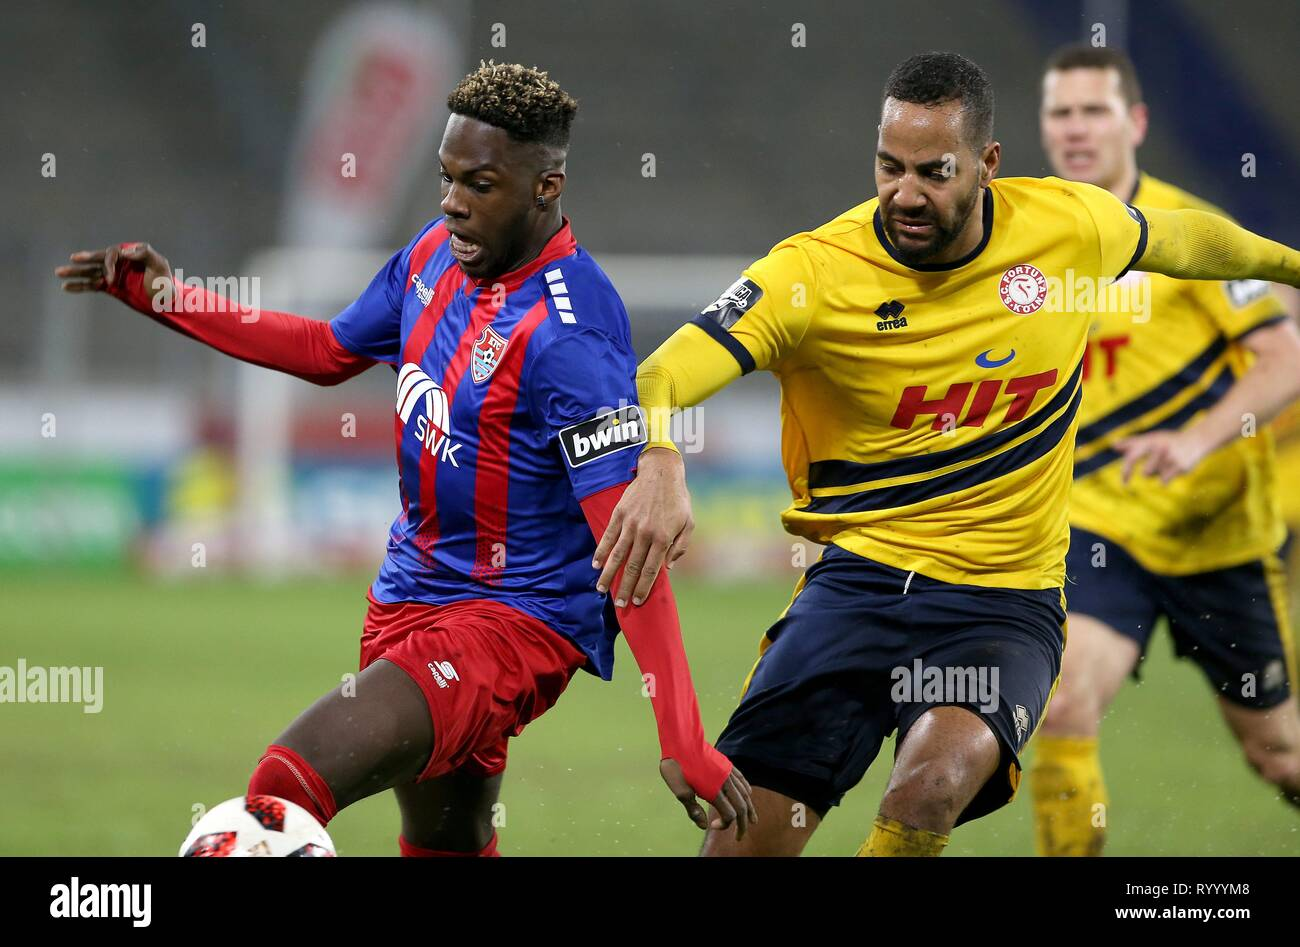 Duisburg, Deutschland. 15th Mar, 2019. firo: 15.03.2019 Football, 3. Bundesliga, season 2018/2019 KFC Uerdingen 05 - SC Fortuna Cologne Johannes Dörfler (# 16, KFC Uerdingen 05) in duels with Boné Uaferro (# 4, SC Fortuna Köl) ln) usage worldwide Credit: dpa/Alamy Live News - Stock Image